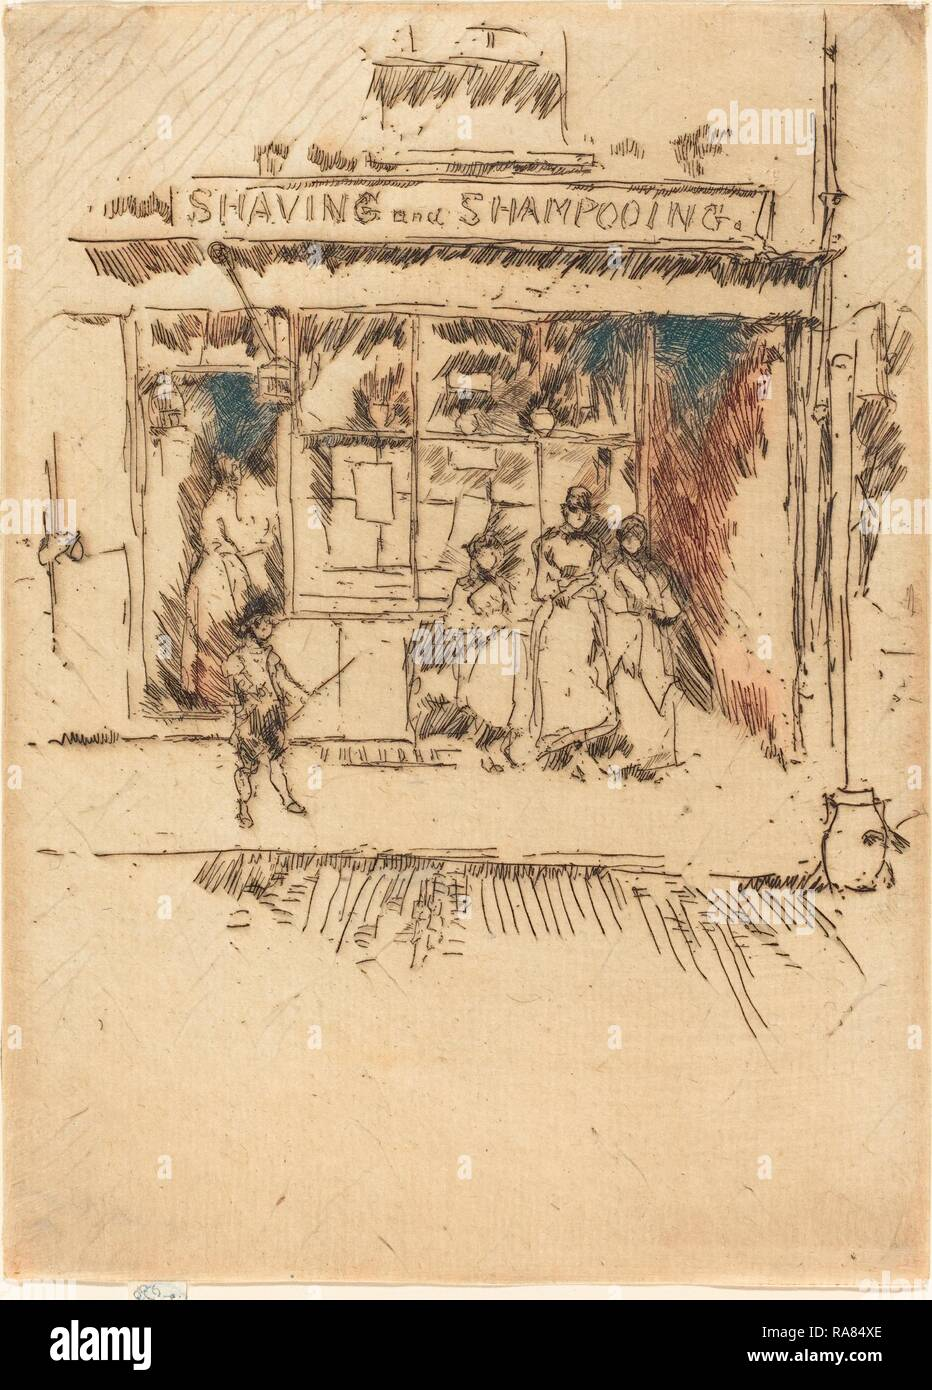 James McNeill Whistler (American, 1834 - 1903), Shaving and Shampooing, c. 1886-1888, etching. Reimagined - Stock Image